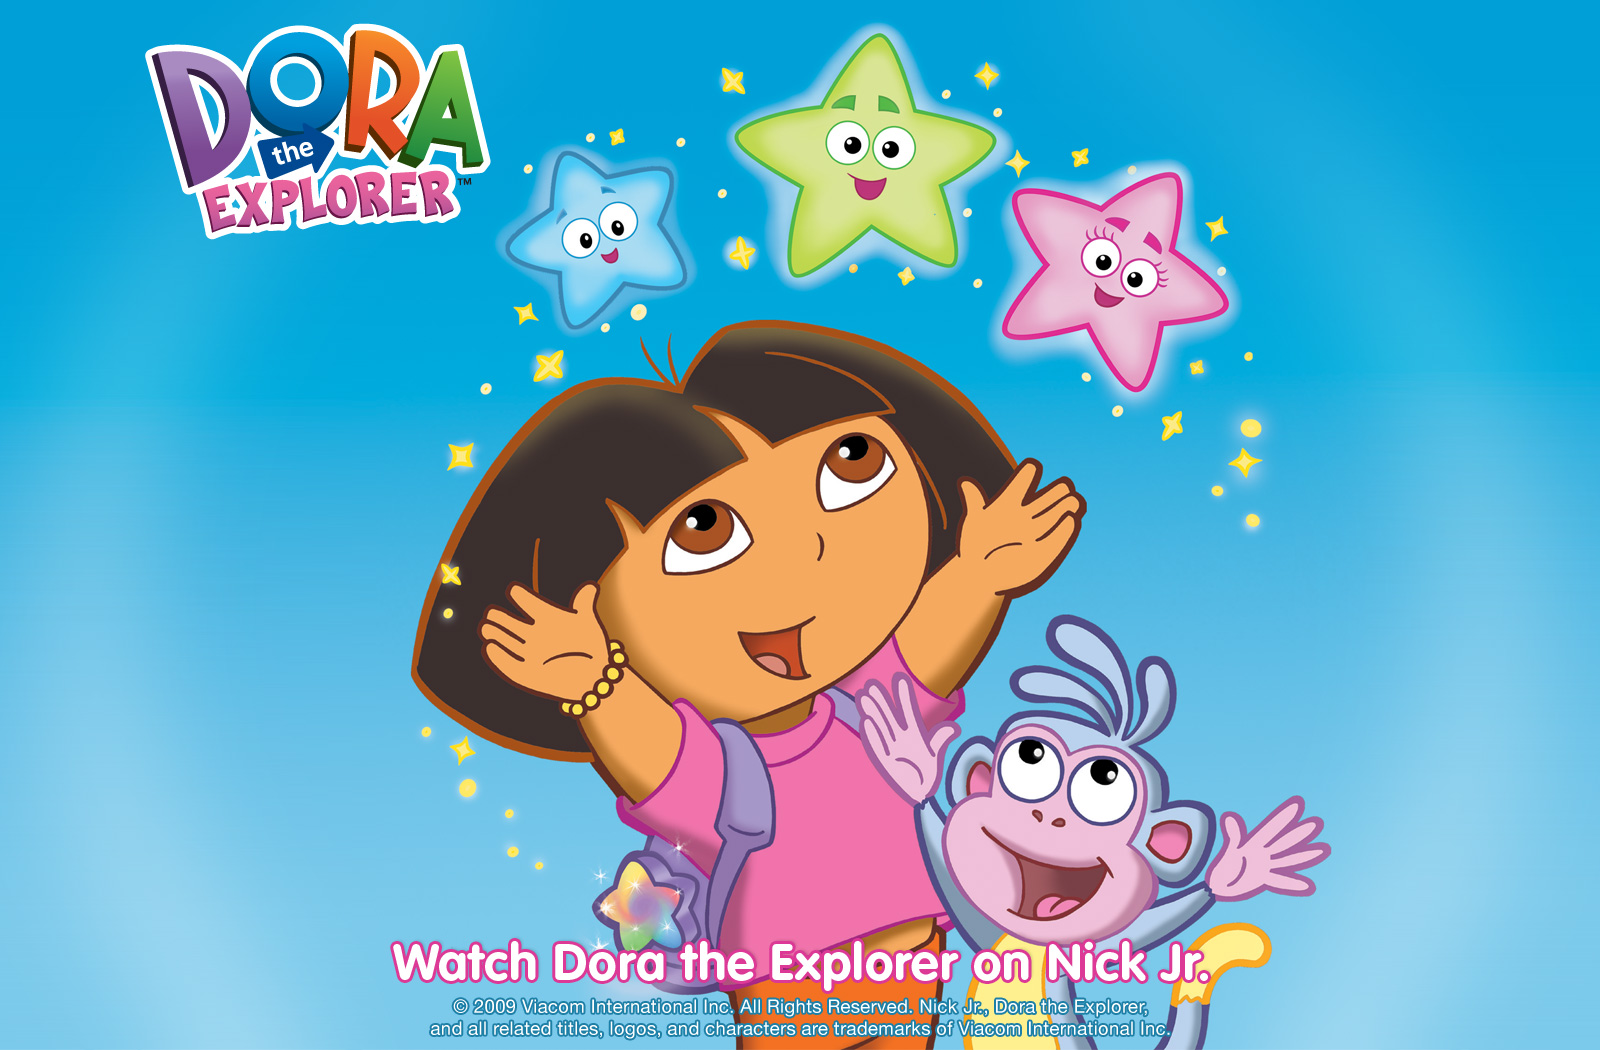 Dora The Explorer Wallpaper CARTOON 1600x1050